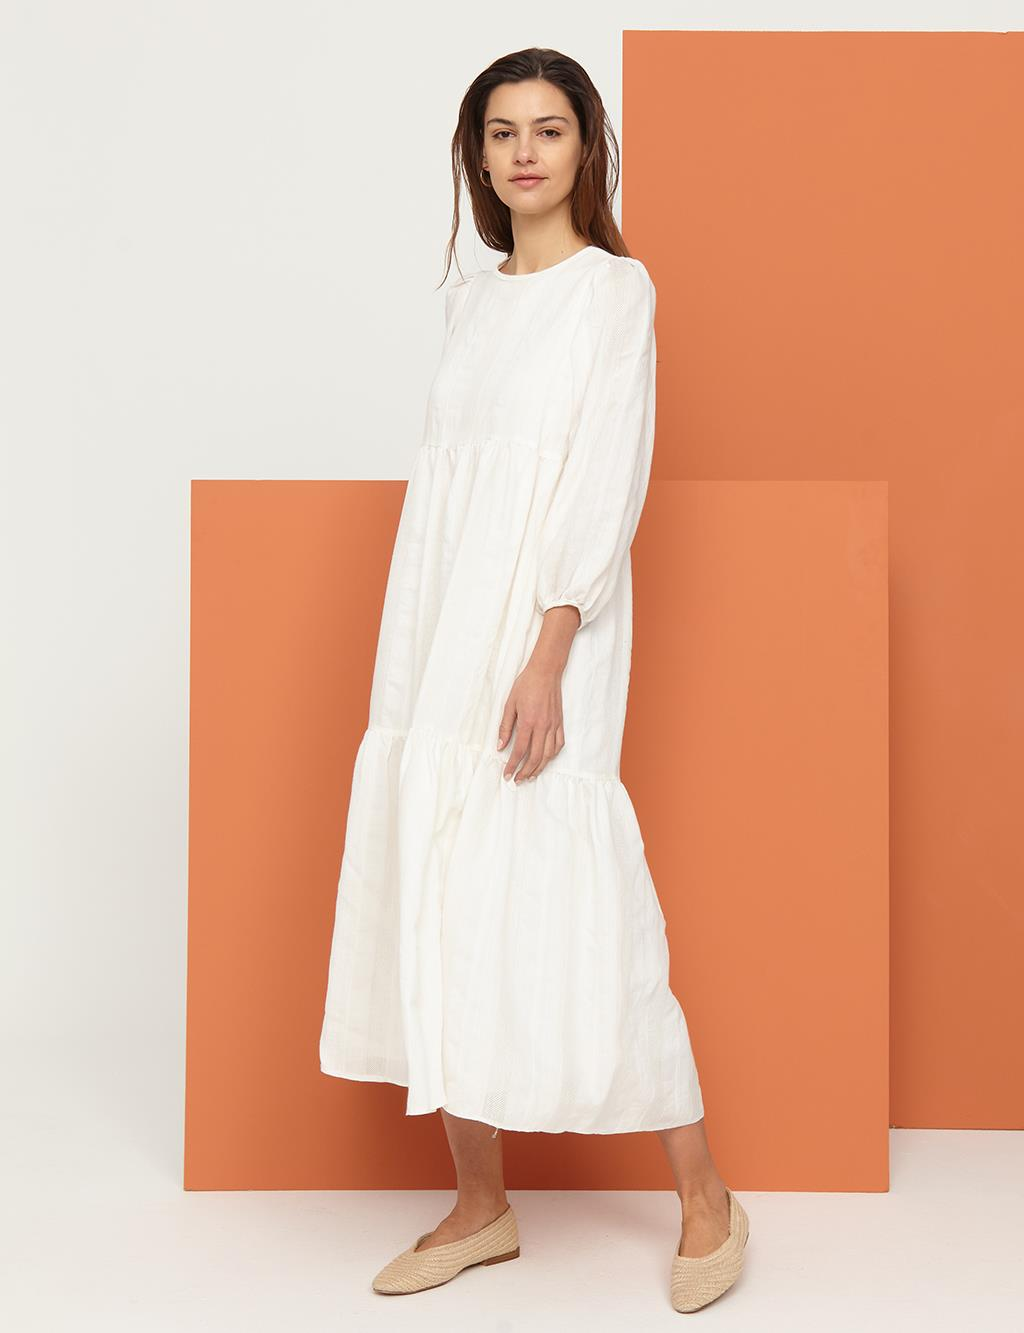 Round Neck Collar Dress B21 23035 Ecru